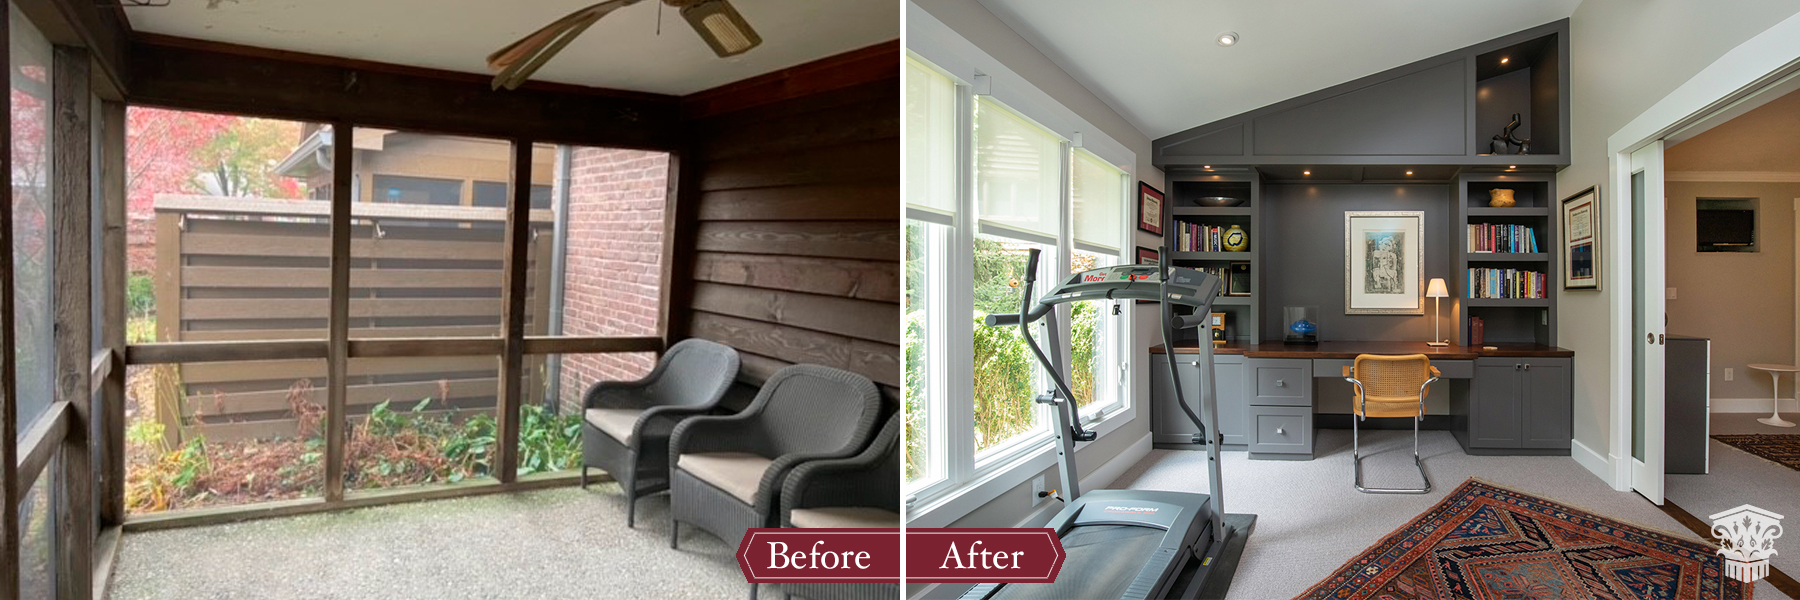 porch to home office before and after